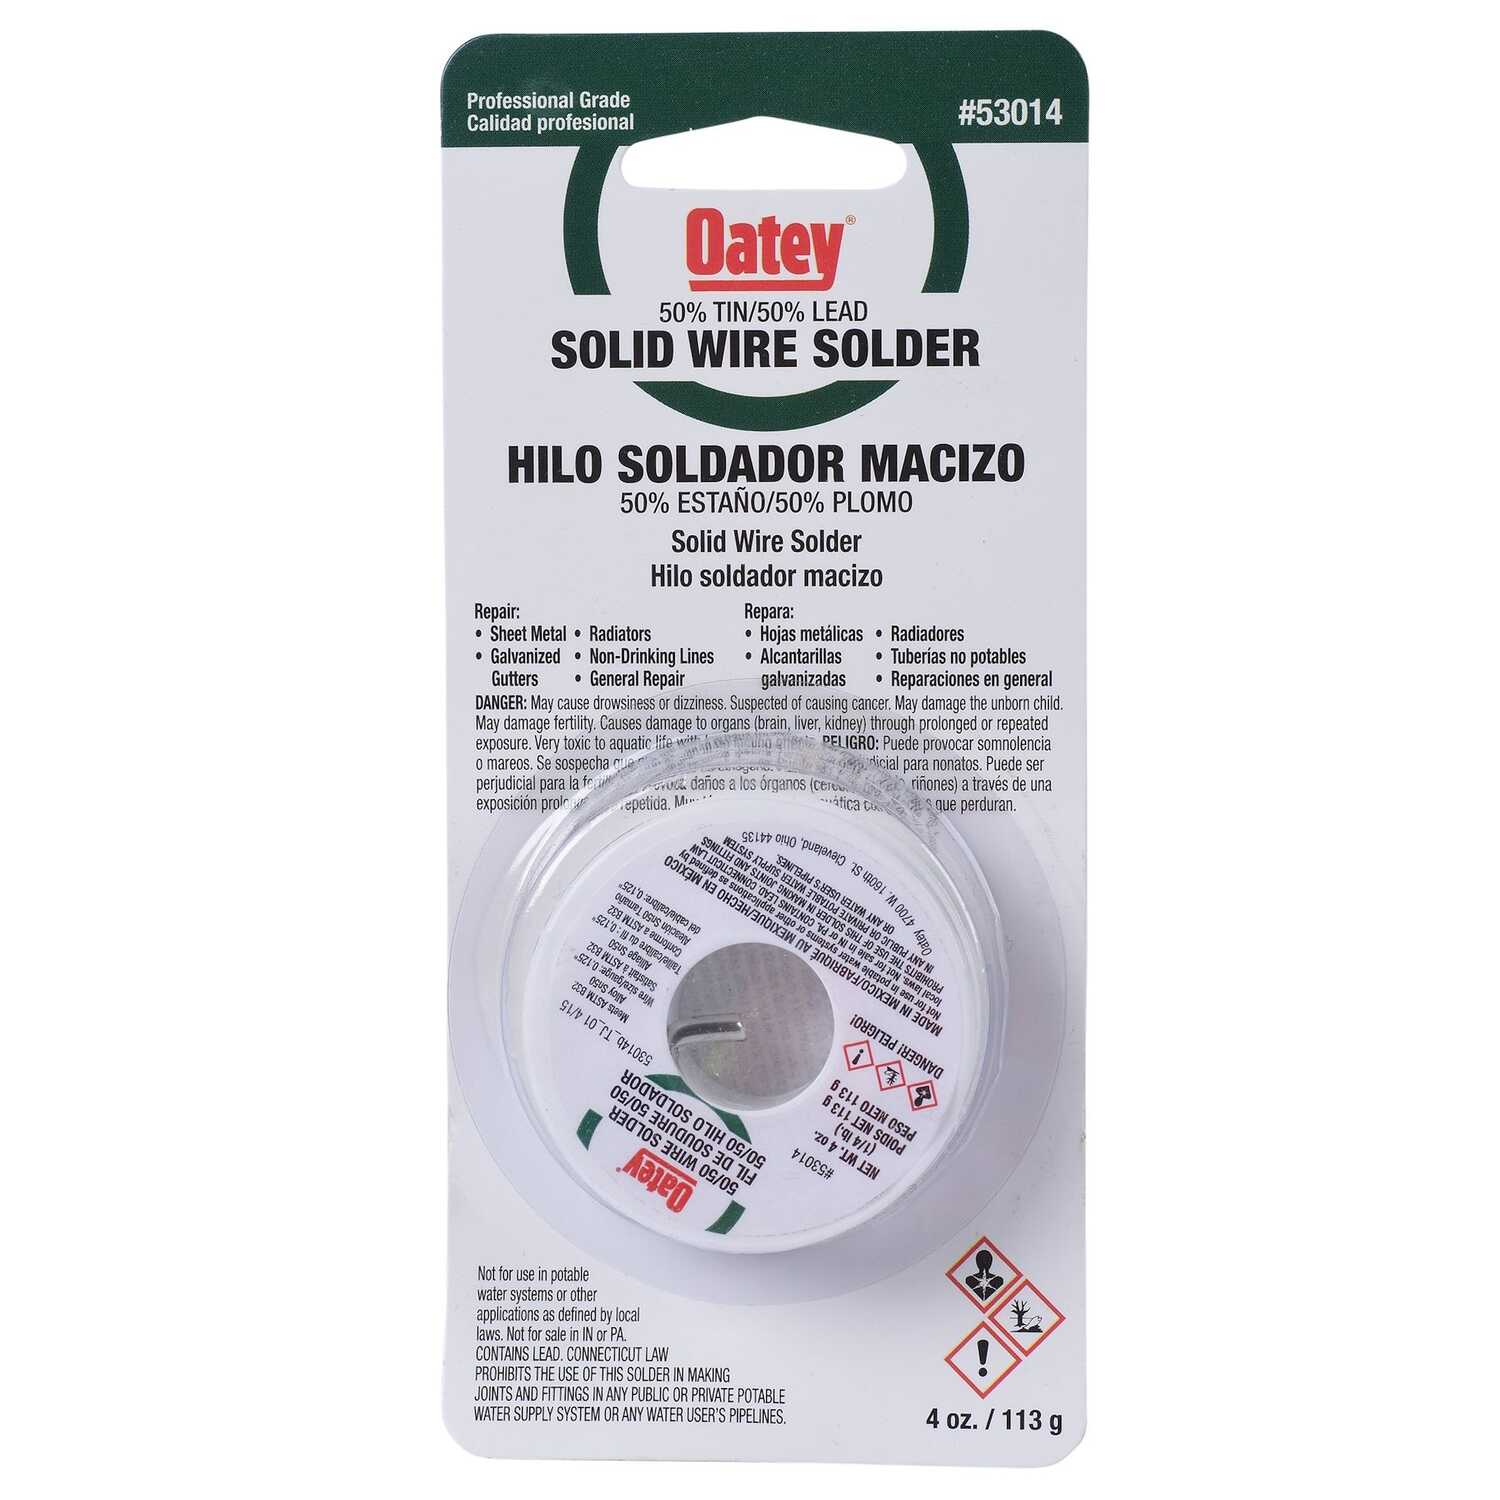 Oatey  4 oz. Solid Wire Solder  0.125 in. Dia. x 1/4 lb.  Tin/Lead  50/50